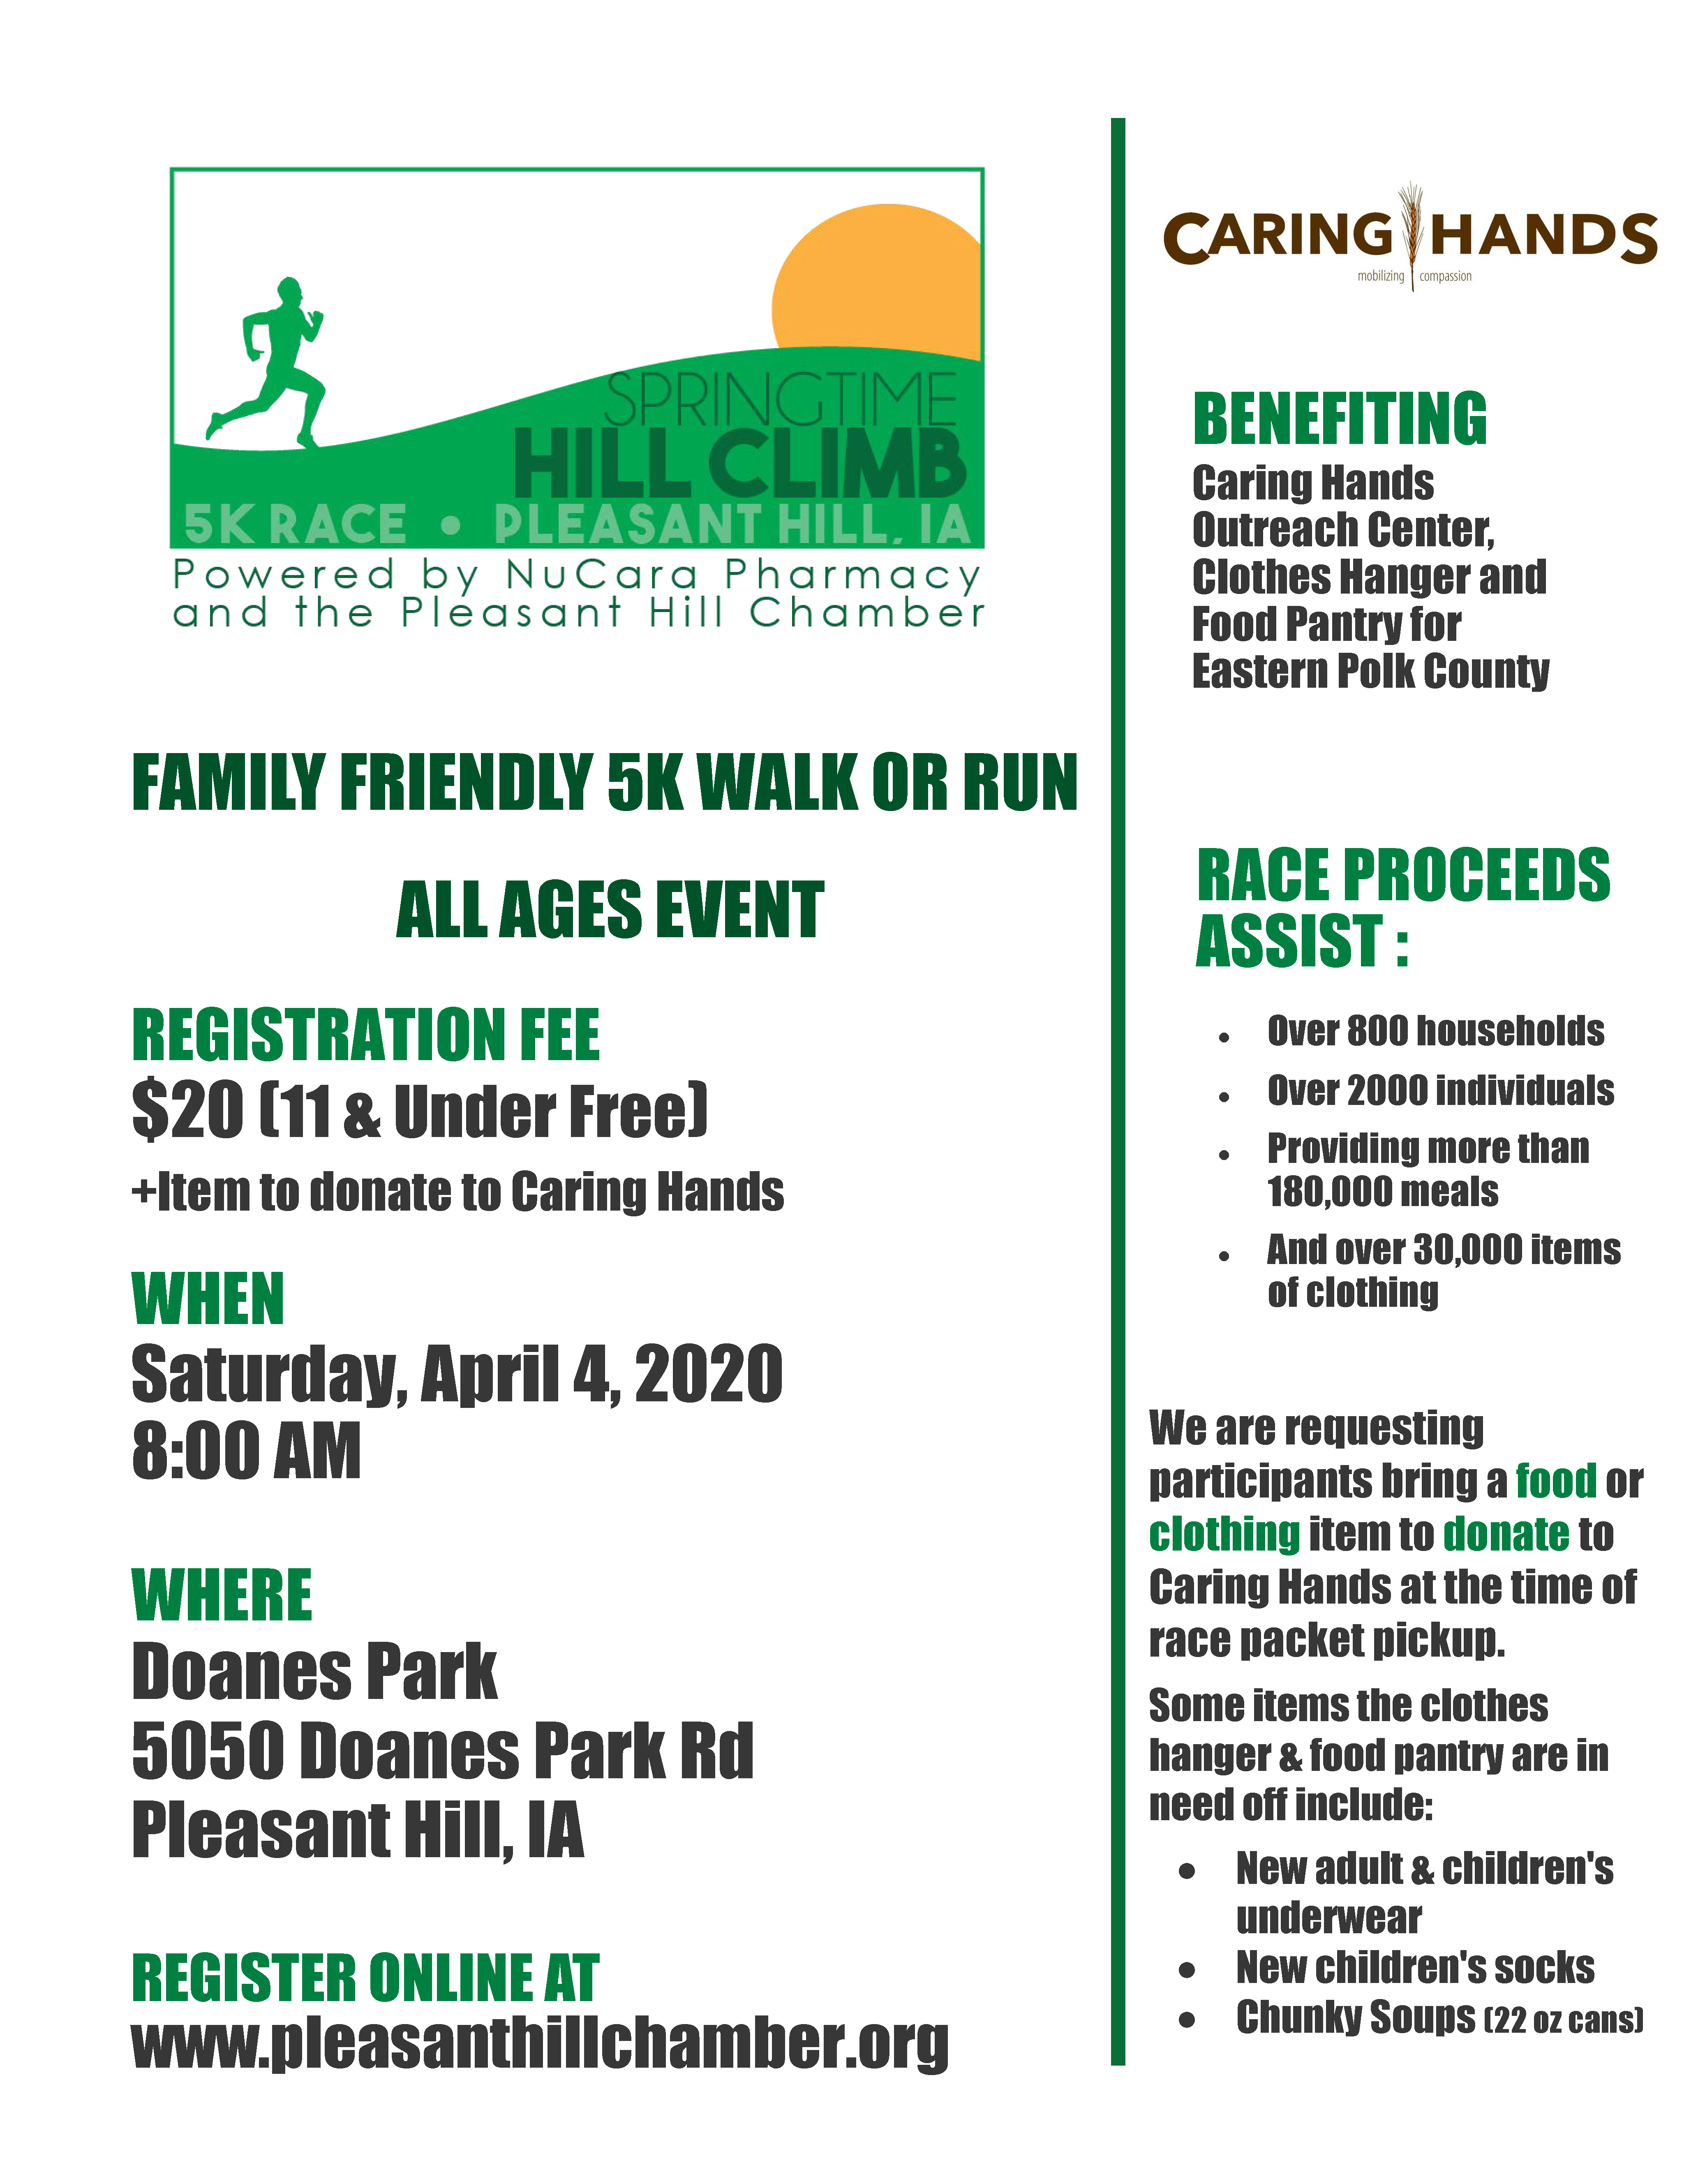 Register for Spring Time Hill Climb